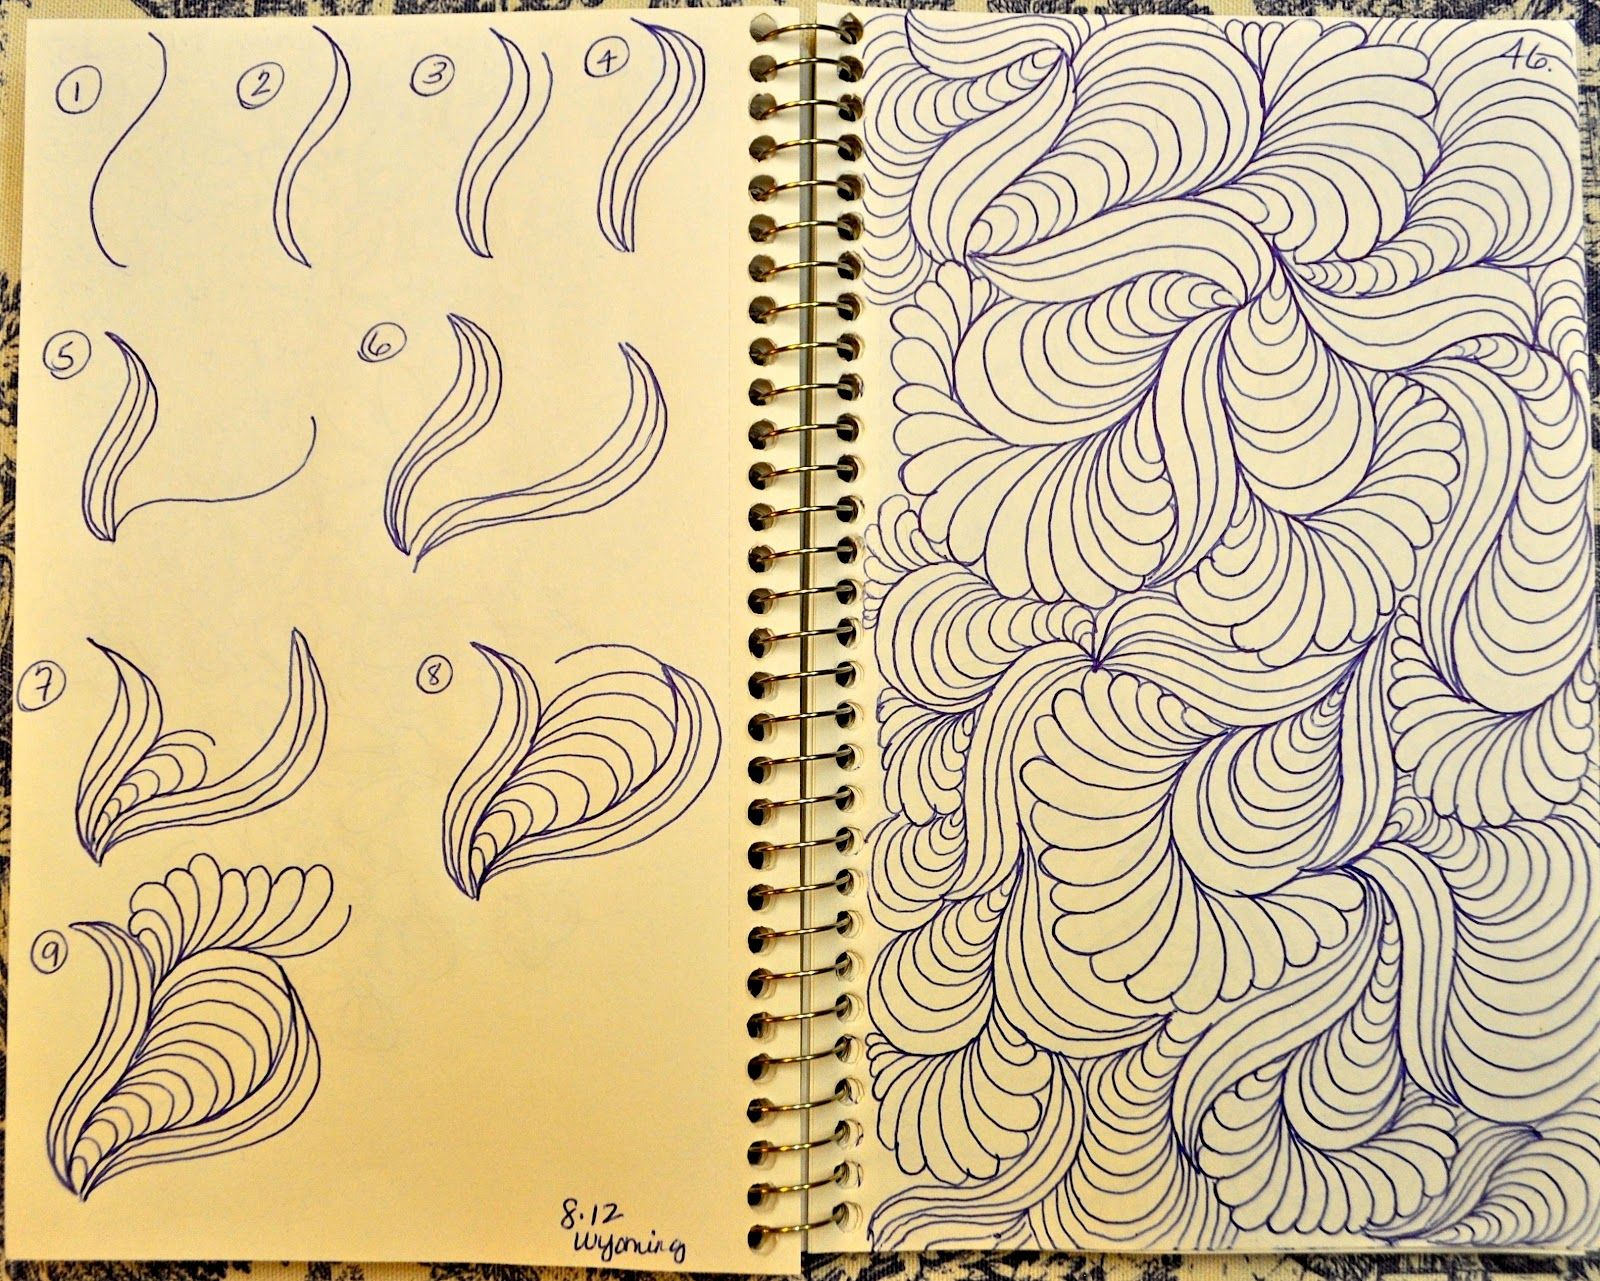 Quilting Sketch Book Background Fill Zentangle Patterns Doodle Patterns Tangle Art